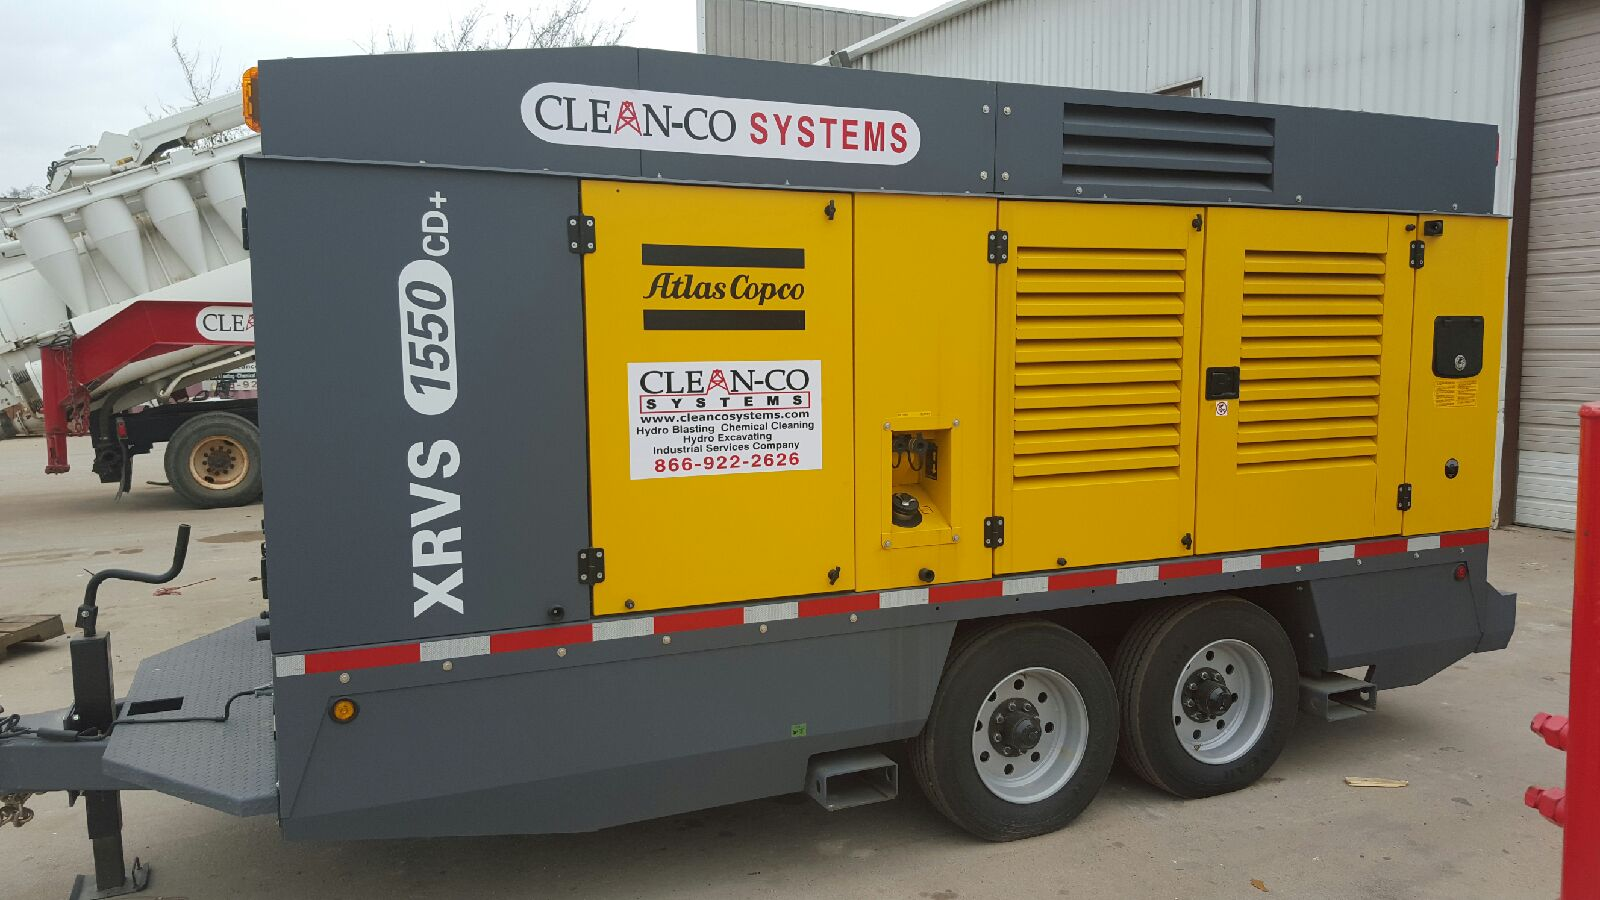 Cleanco DryIce blasting equipment